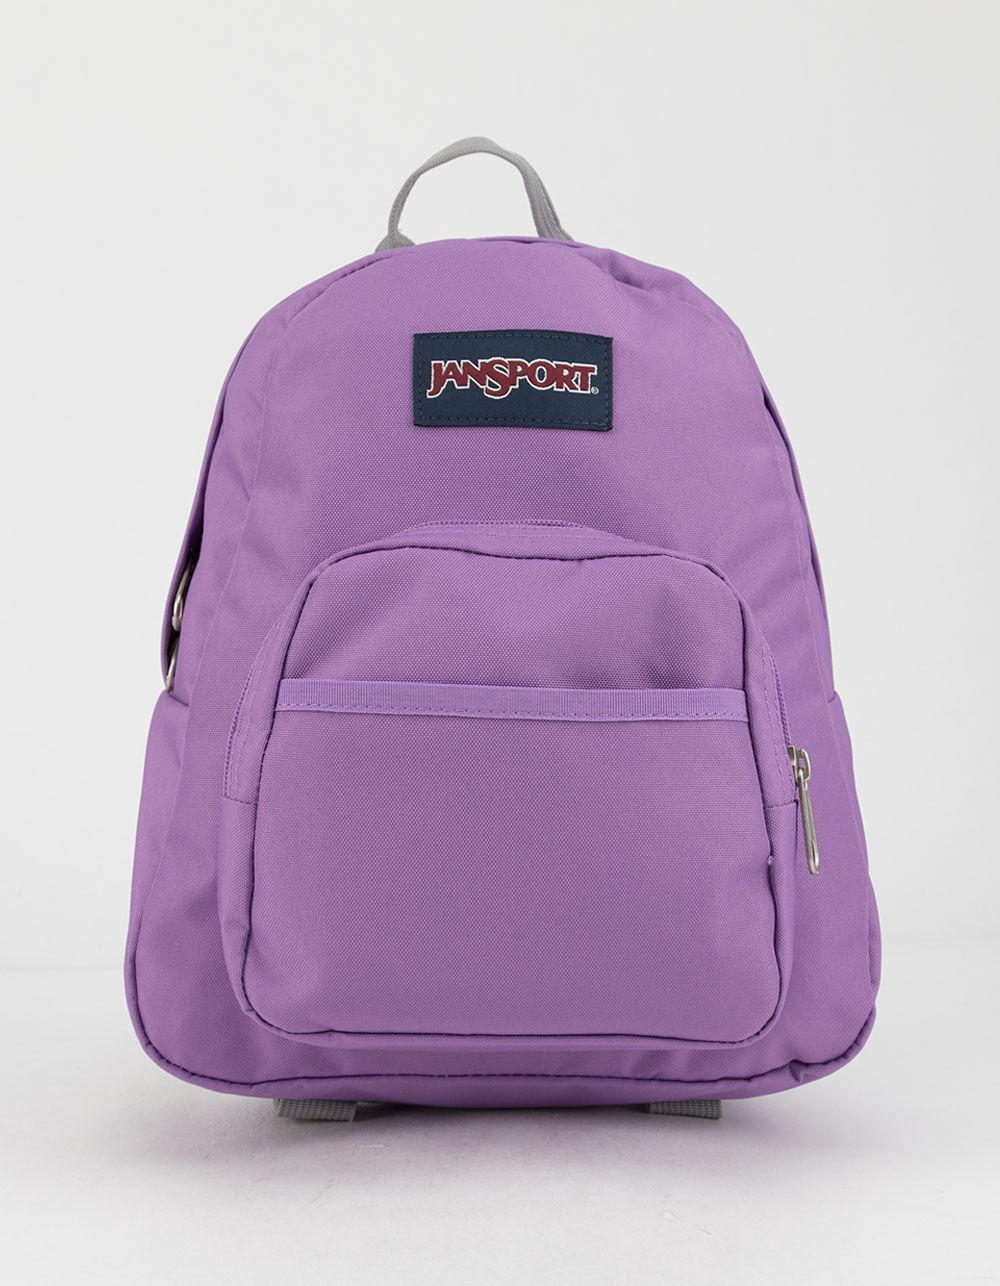 60eeae14a6 Lyst - Jansport Half Pint Vivid Lilac Mini Backpack in Purple - Save 4%